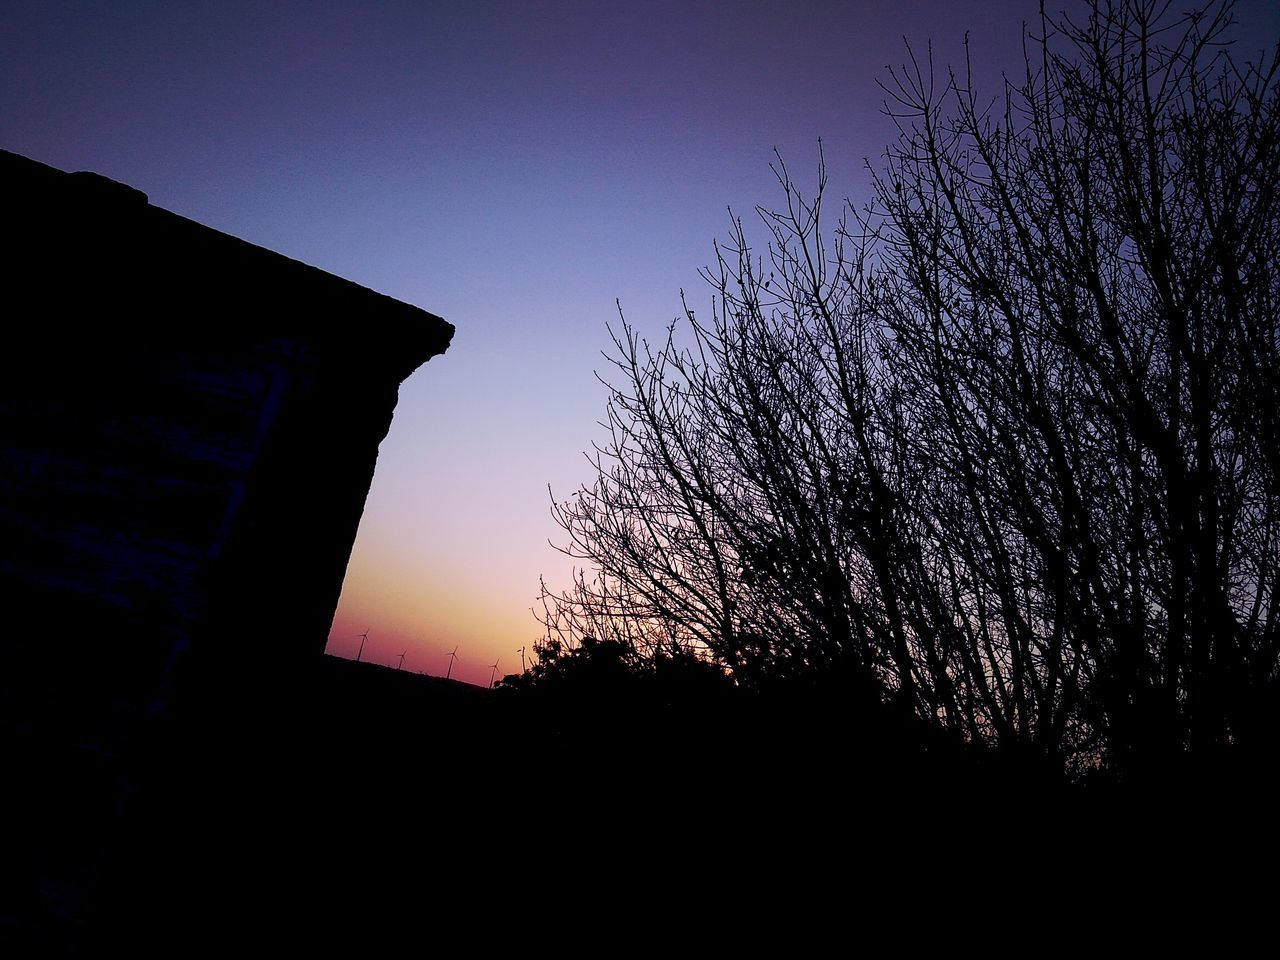 sunset, silhouette, low angle view, no people, sky, beauty in nature, tree, nature, clear sky, built structure, outdoors, architecture, day